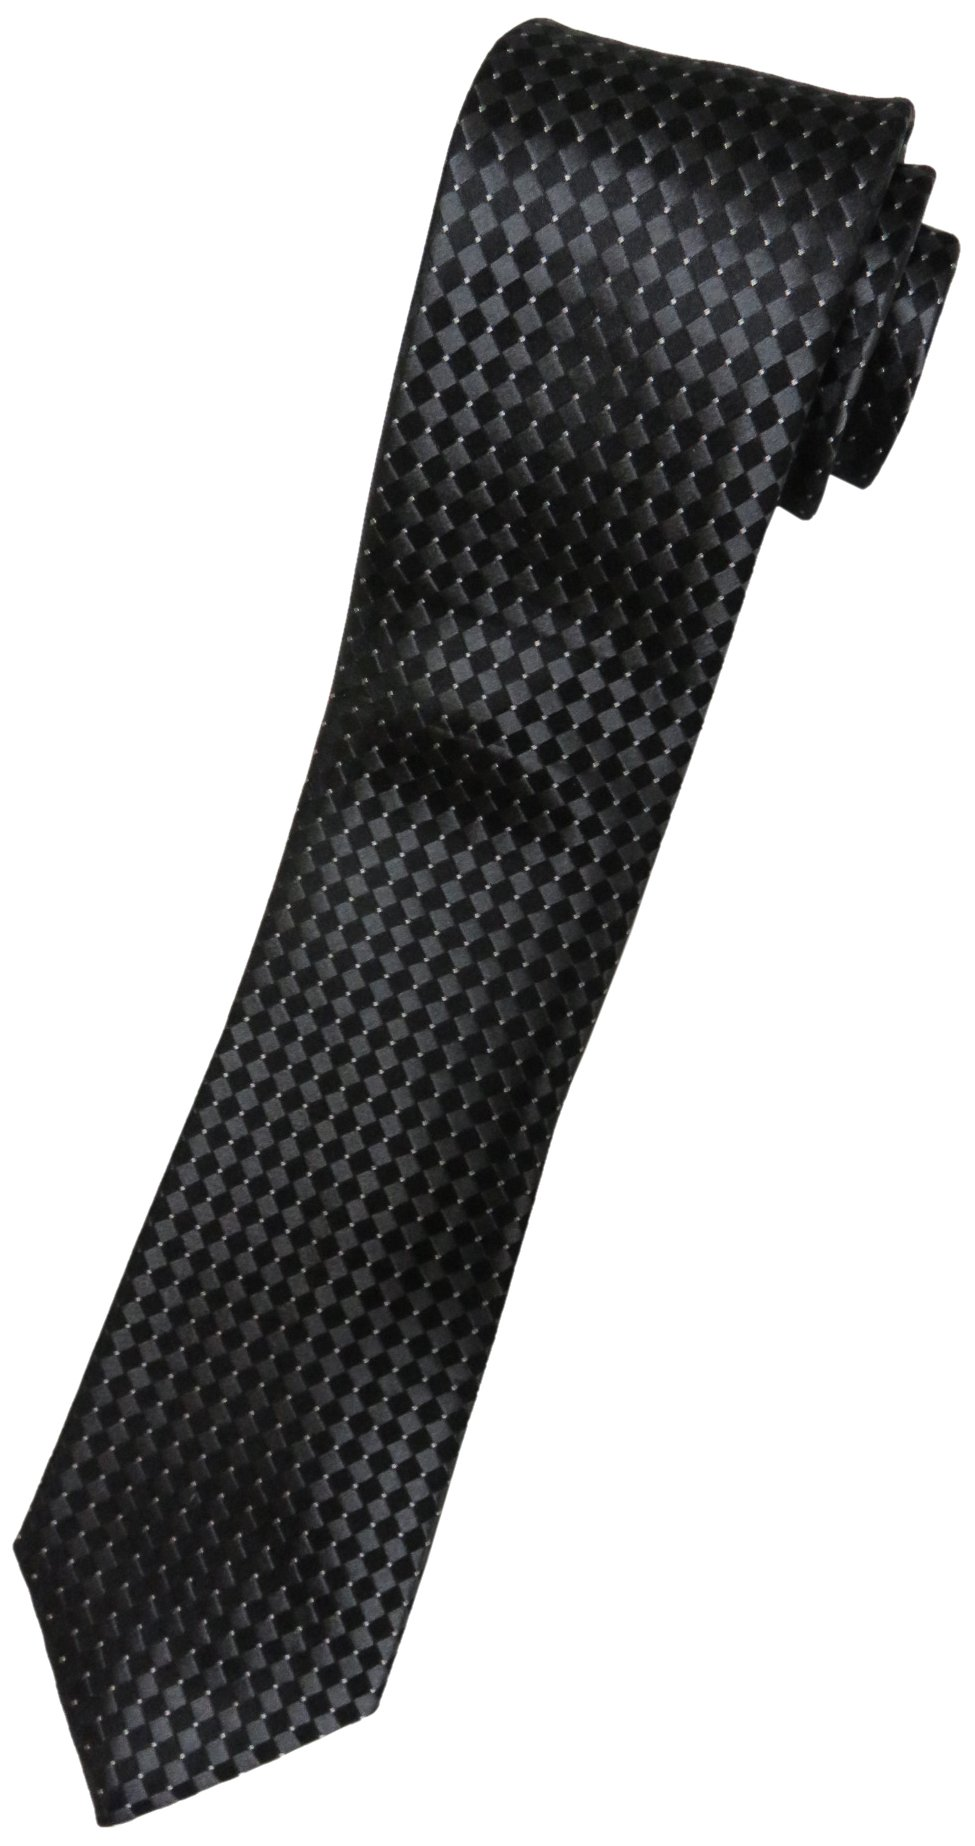 Donald Trump Neck Tie Black Charcoal and Silver Diamond with Gold Crest by Donald Trump